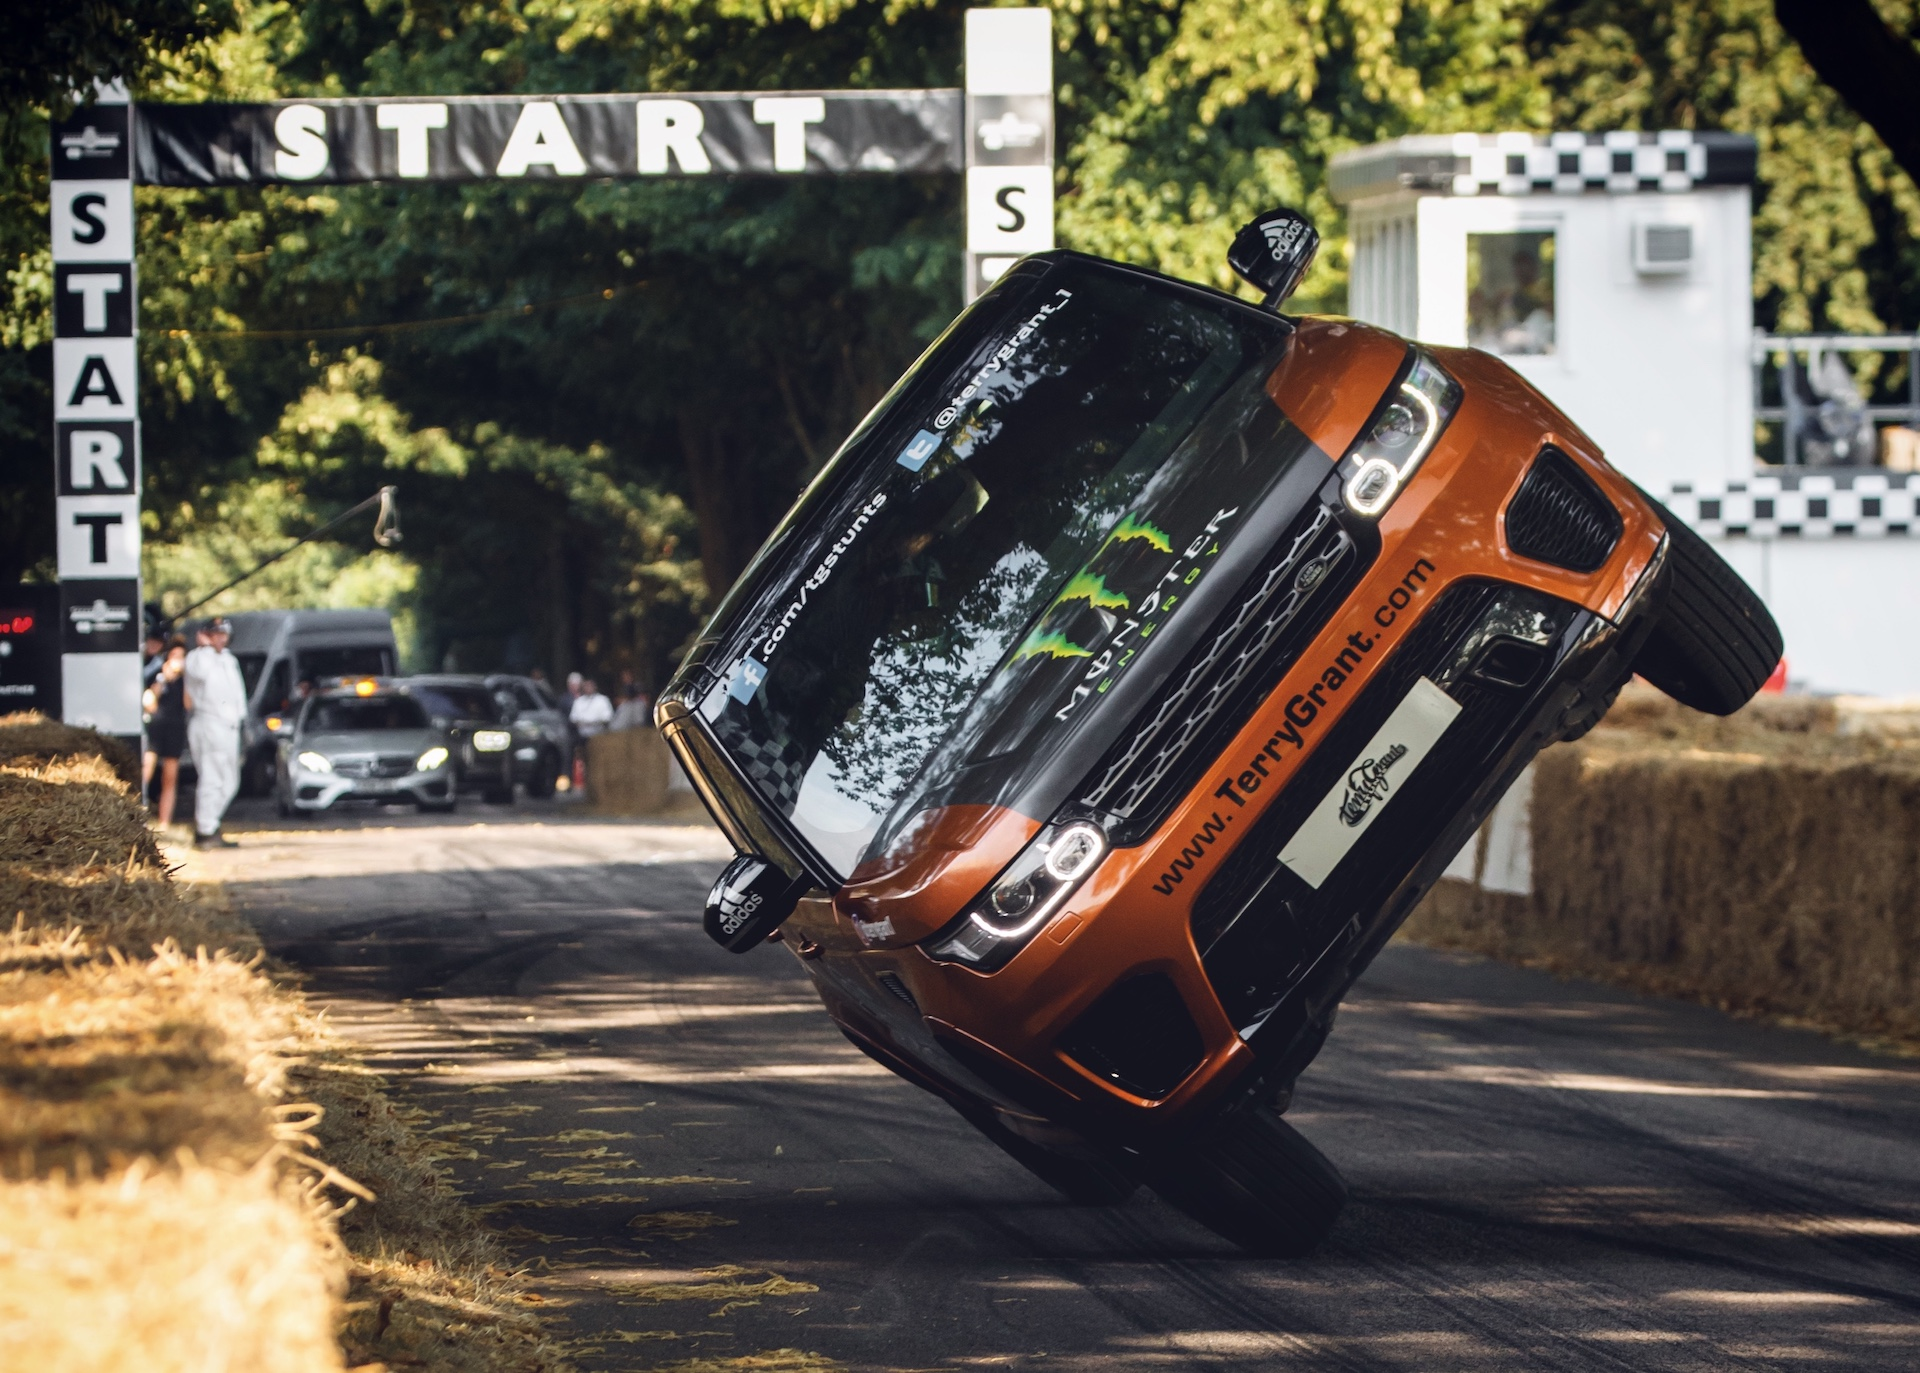 Land Rover sets world record for fastest mile in a car on 2 wheels